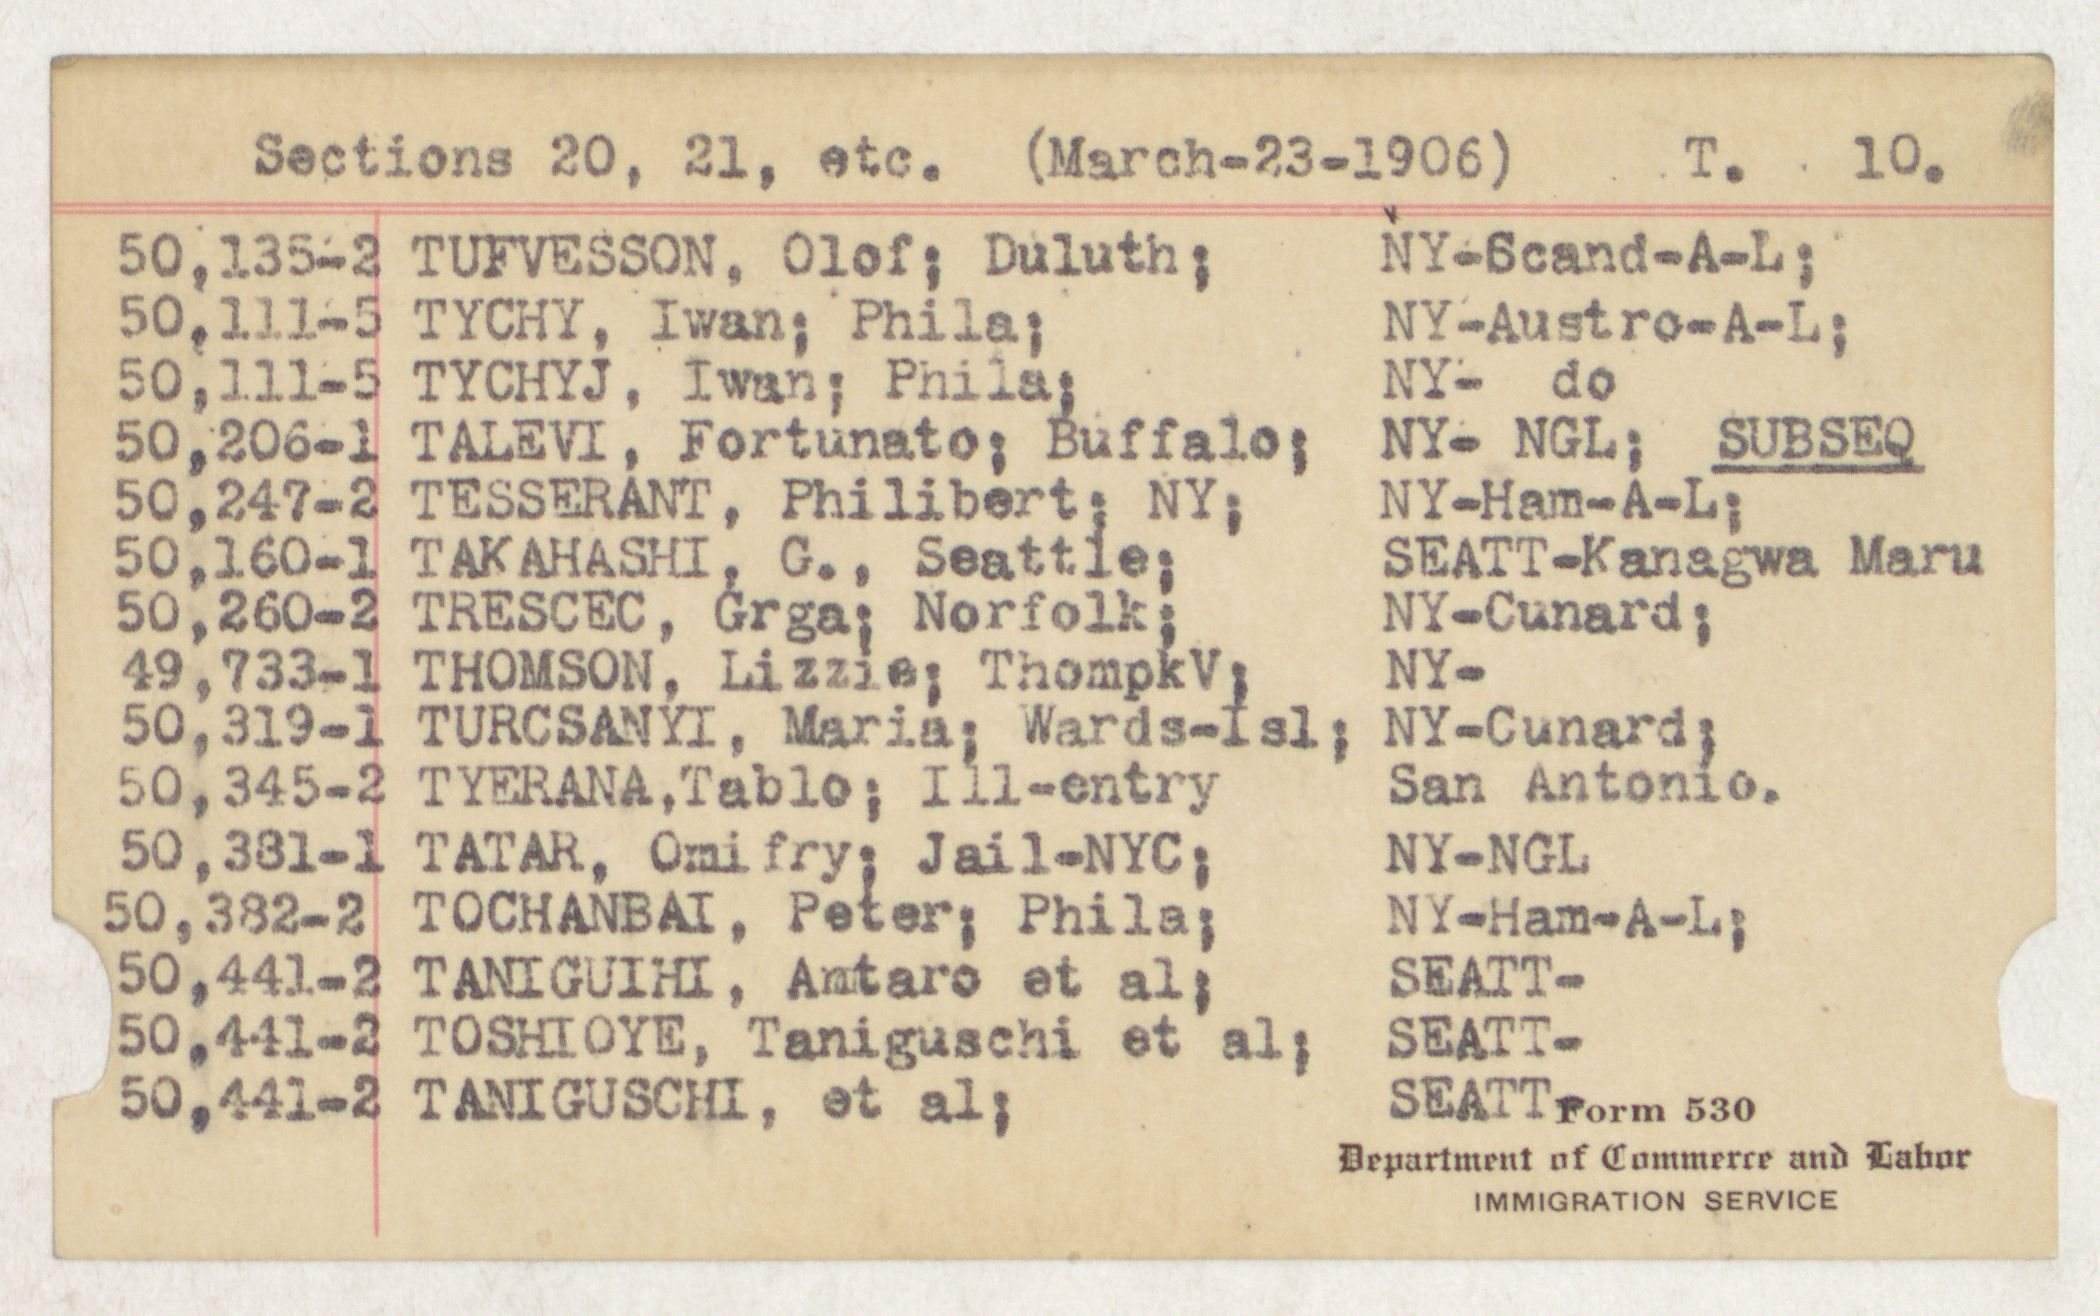 Index Card - T - Deportations [Sections 20 and 21, etc.] - T - 10